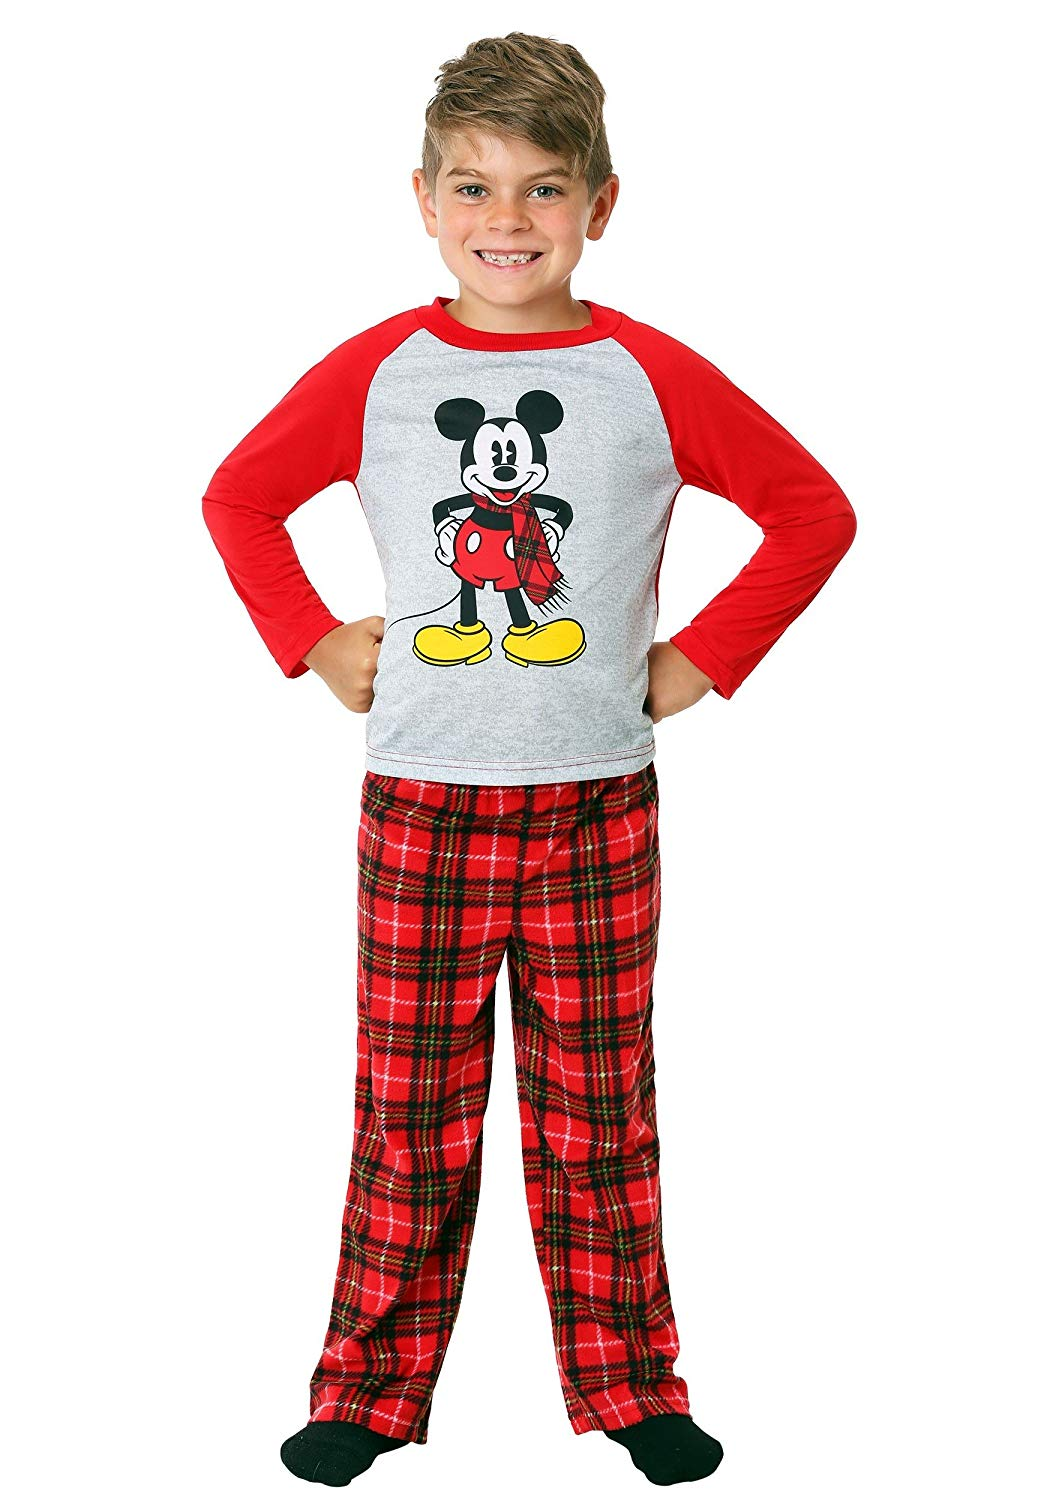 af6cf92d32 Get Quotations · Mickey and Minnie Mouse Christmas Holiday Family Sleepwear  Pajamas (Adult Kid Toddler)